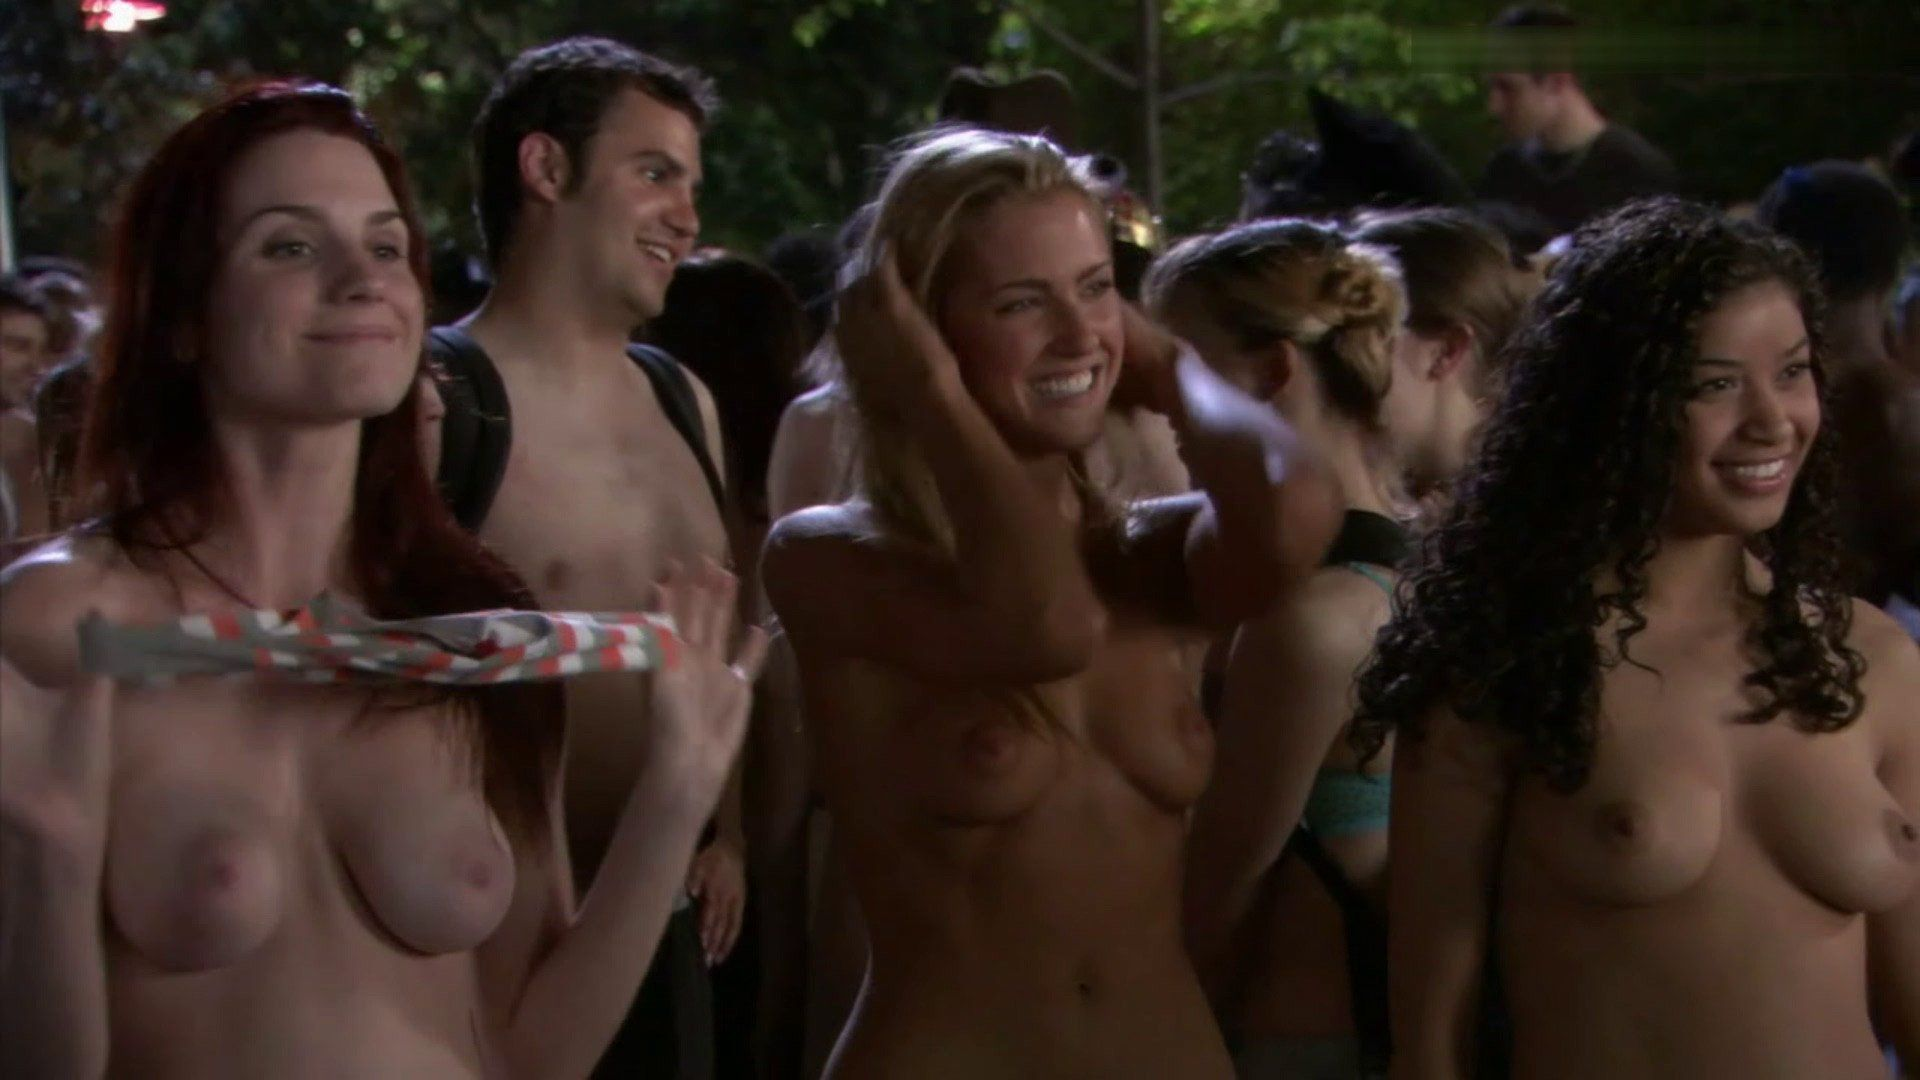 American Pie 5 Naked celebrity movie archive the naked mile - porn pic.